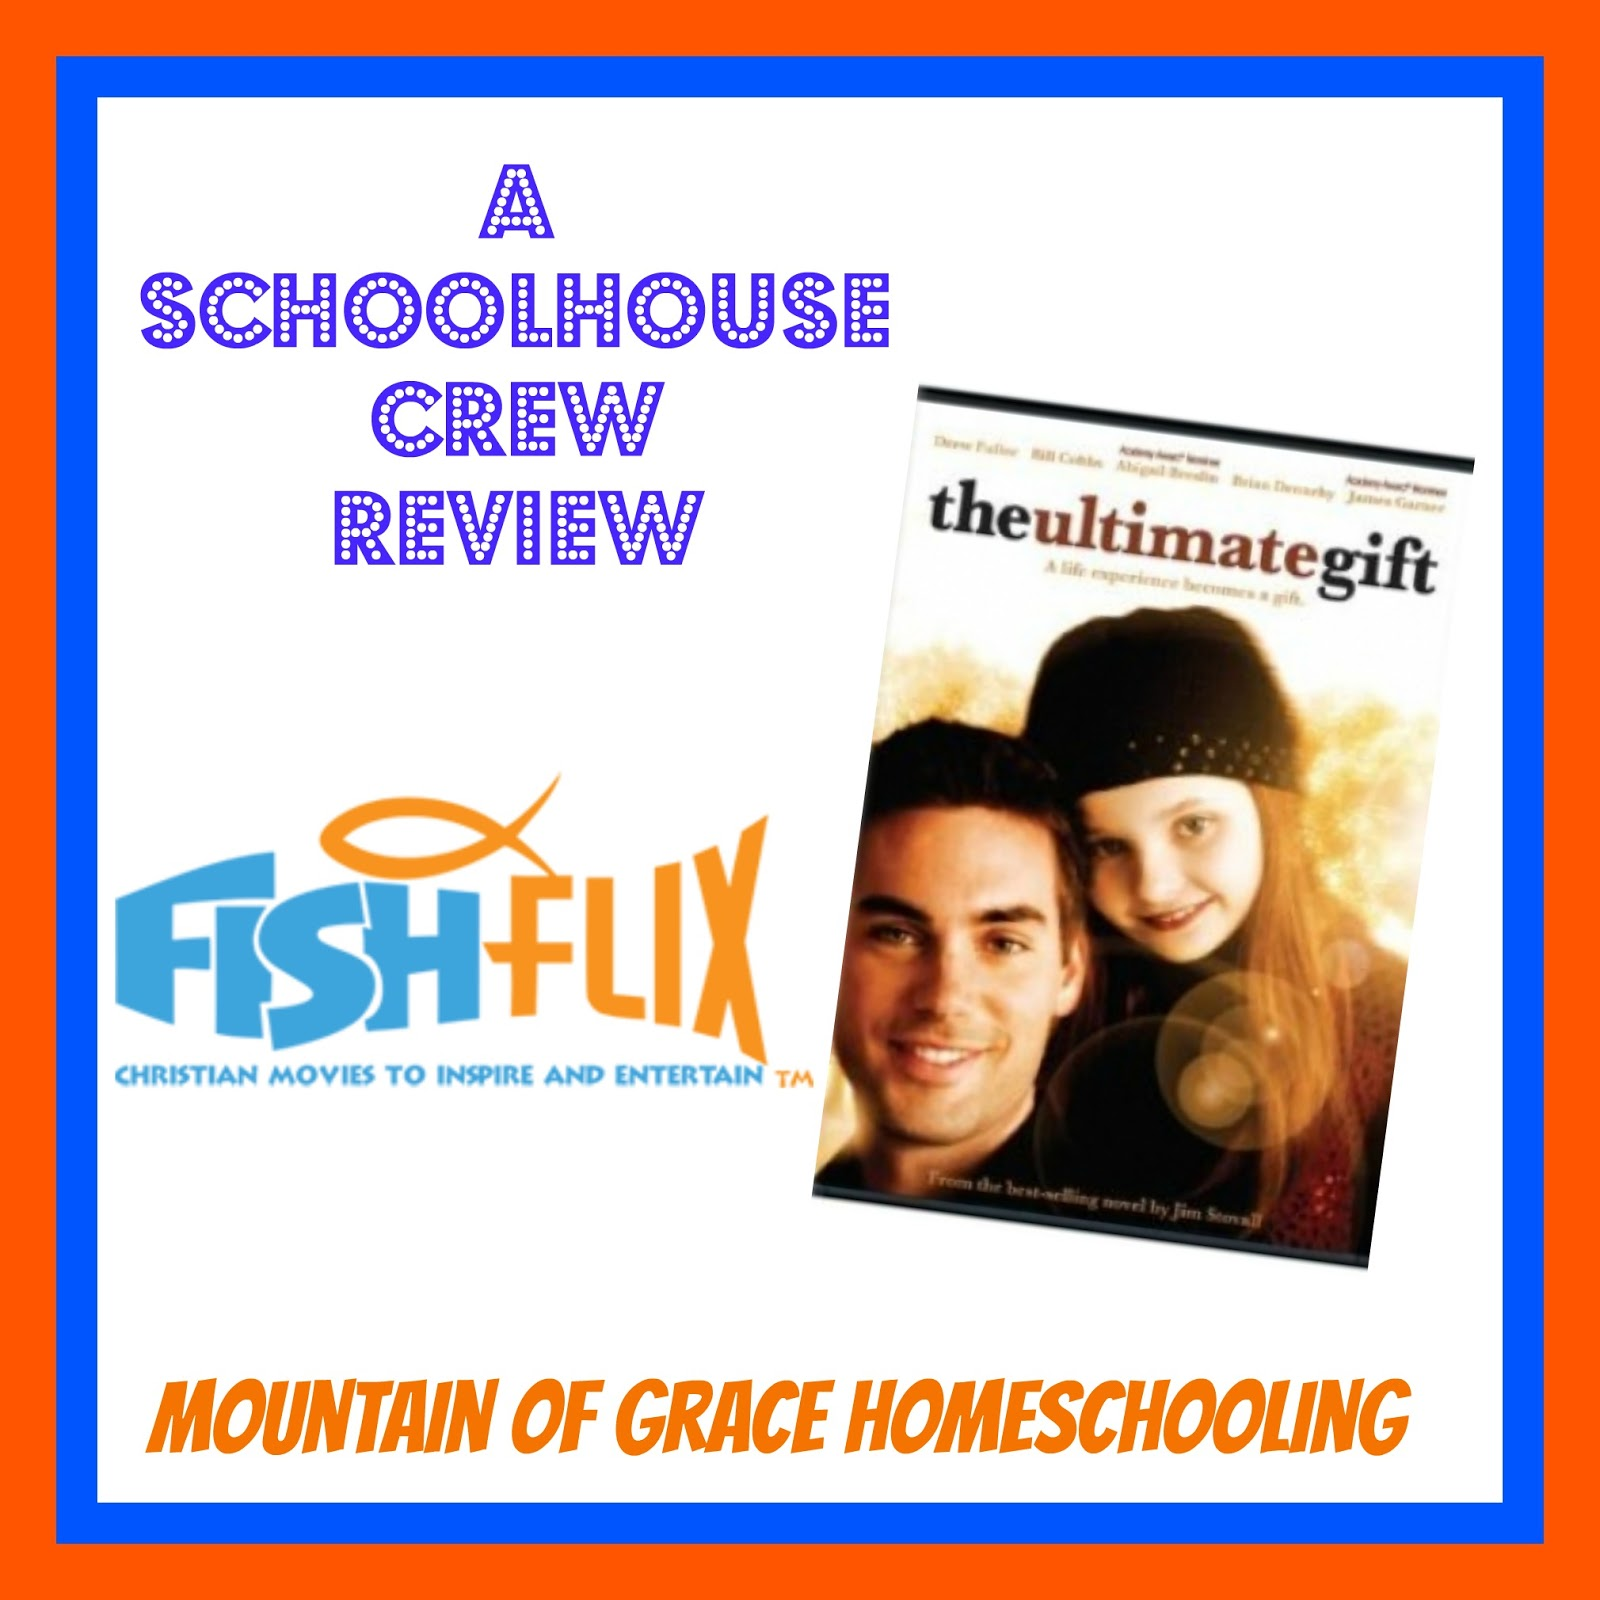 Mountain of Grace Homeschooling: TOS Review~ The Ultimate Gift ...